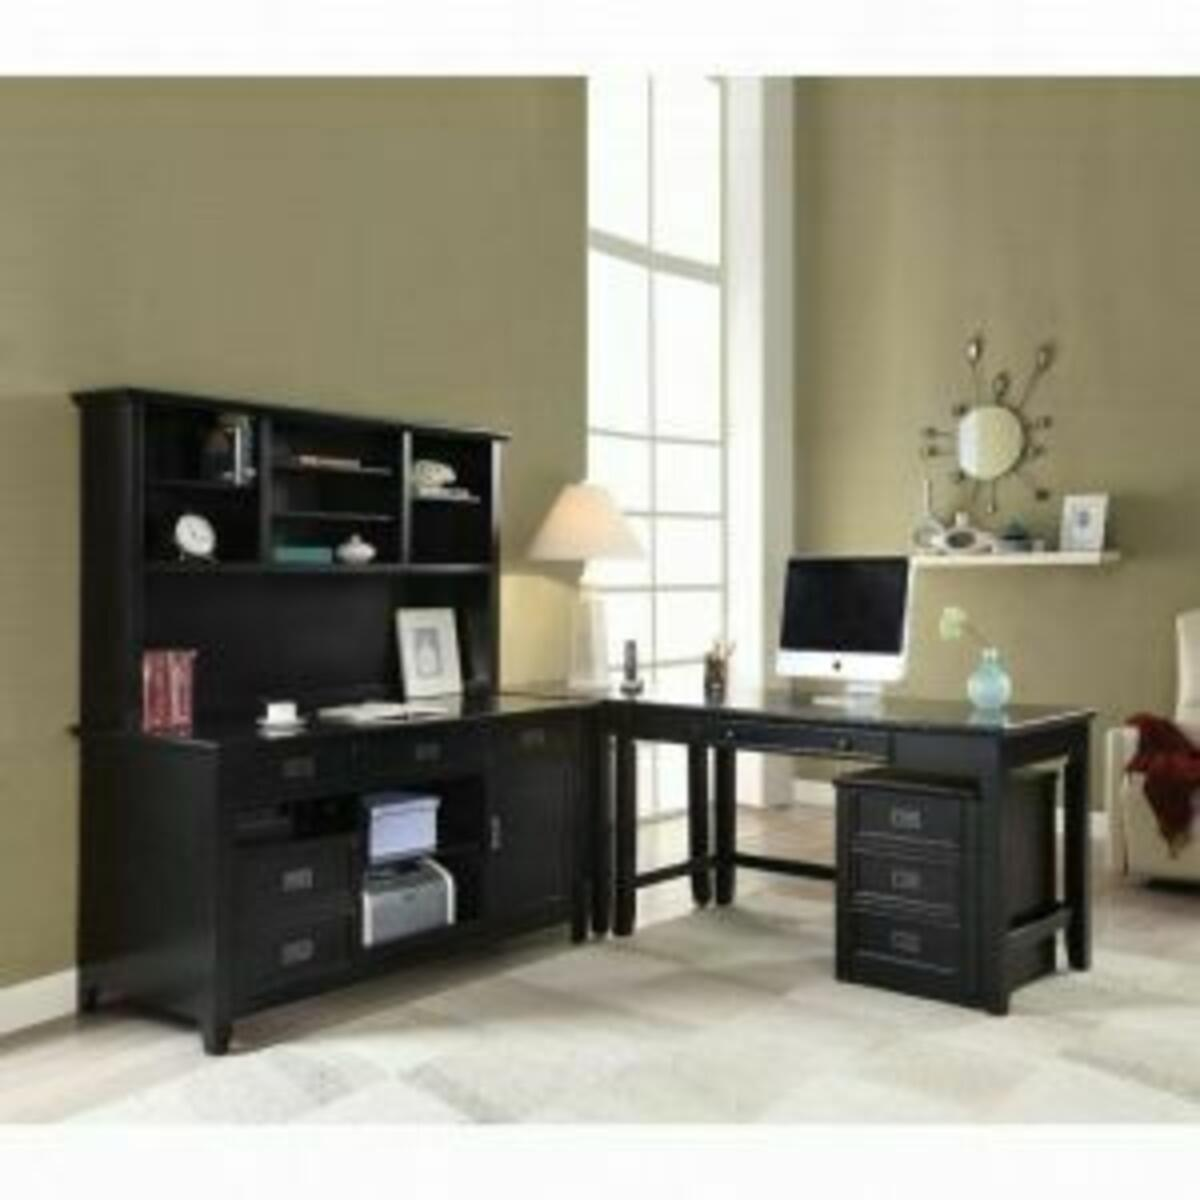 ACME Pandora Desk (Leg) - 92260 - Black